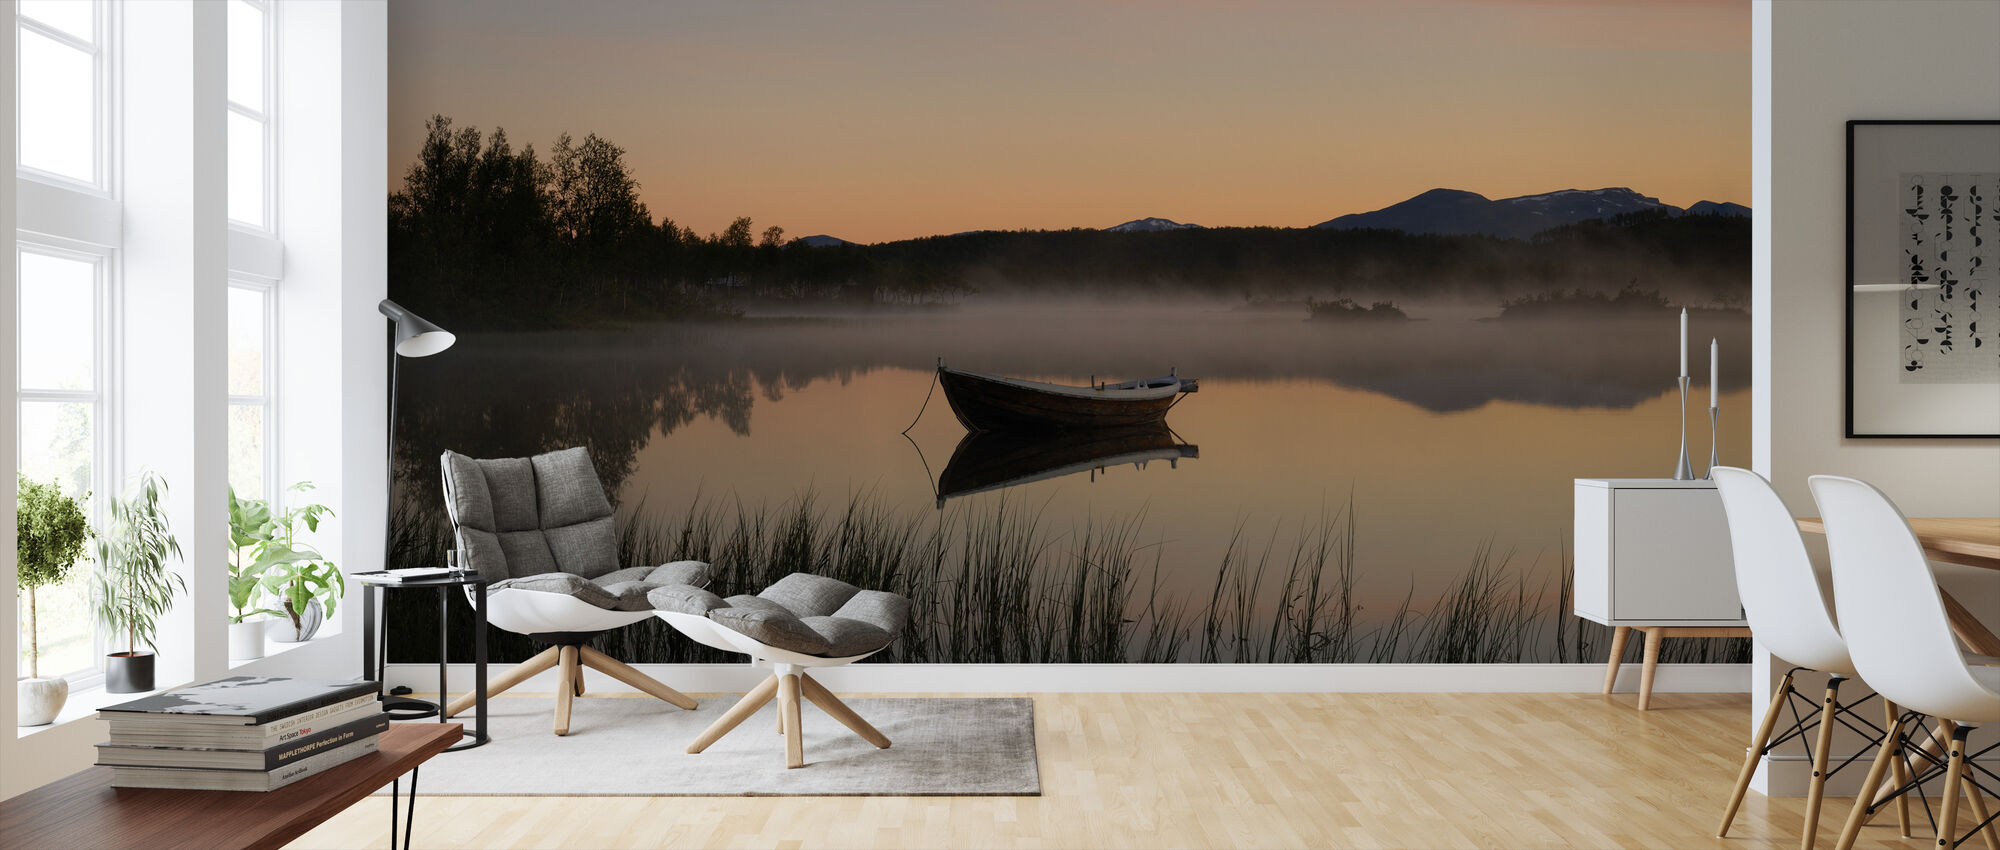 Peaceful Evening at the Lake, Senja Norway - Wallpaper - Living Room